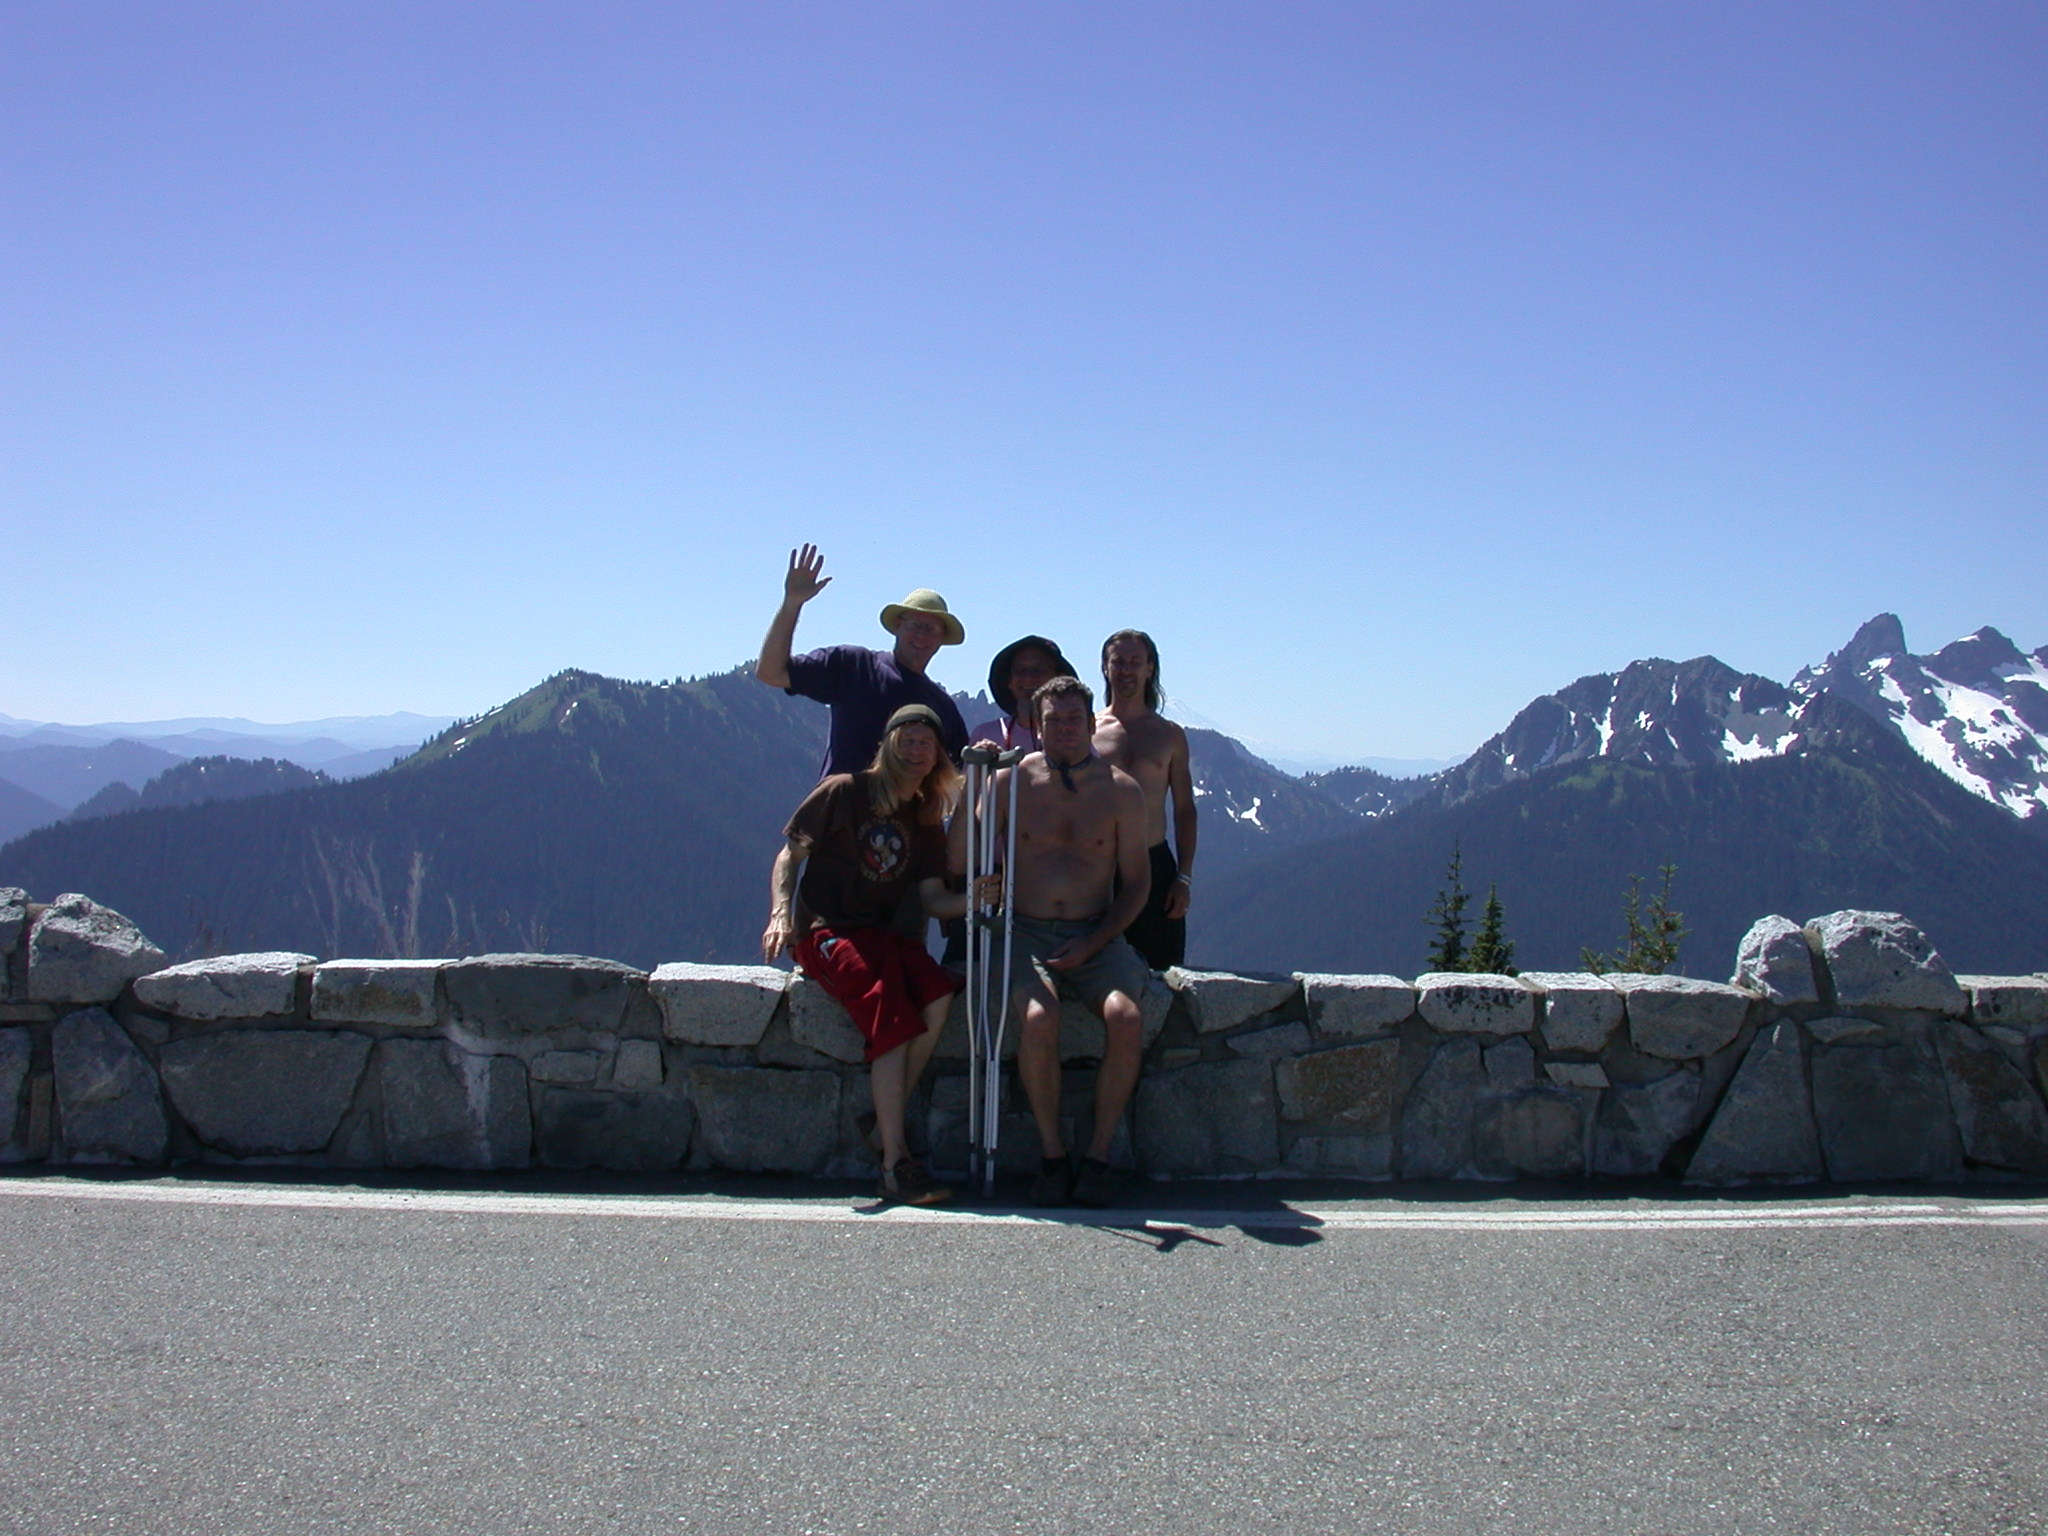 Dazzle, Mugwort, Franz, Kirby, and Tusk at Mount Rainier Outlook